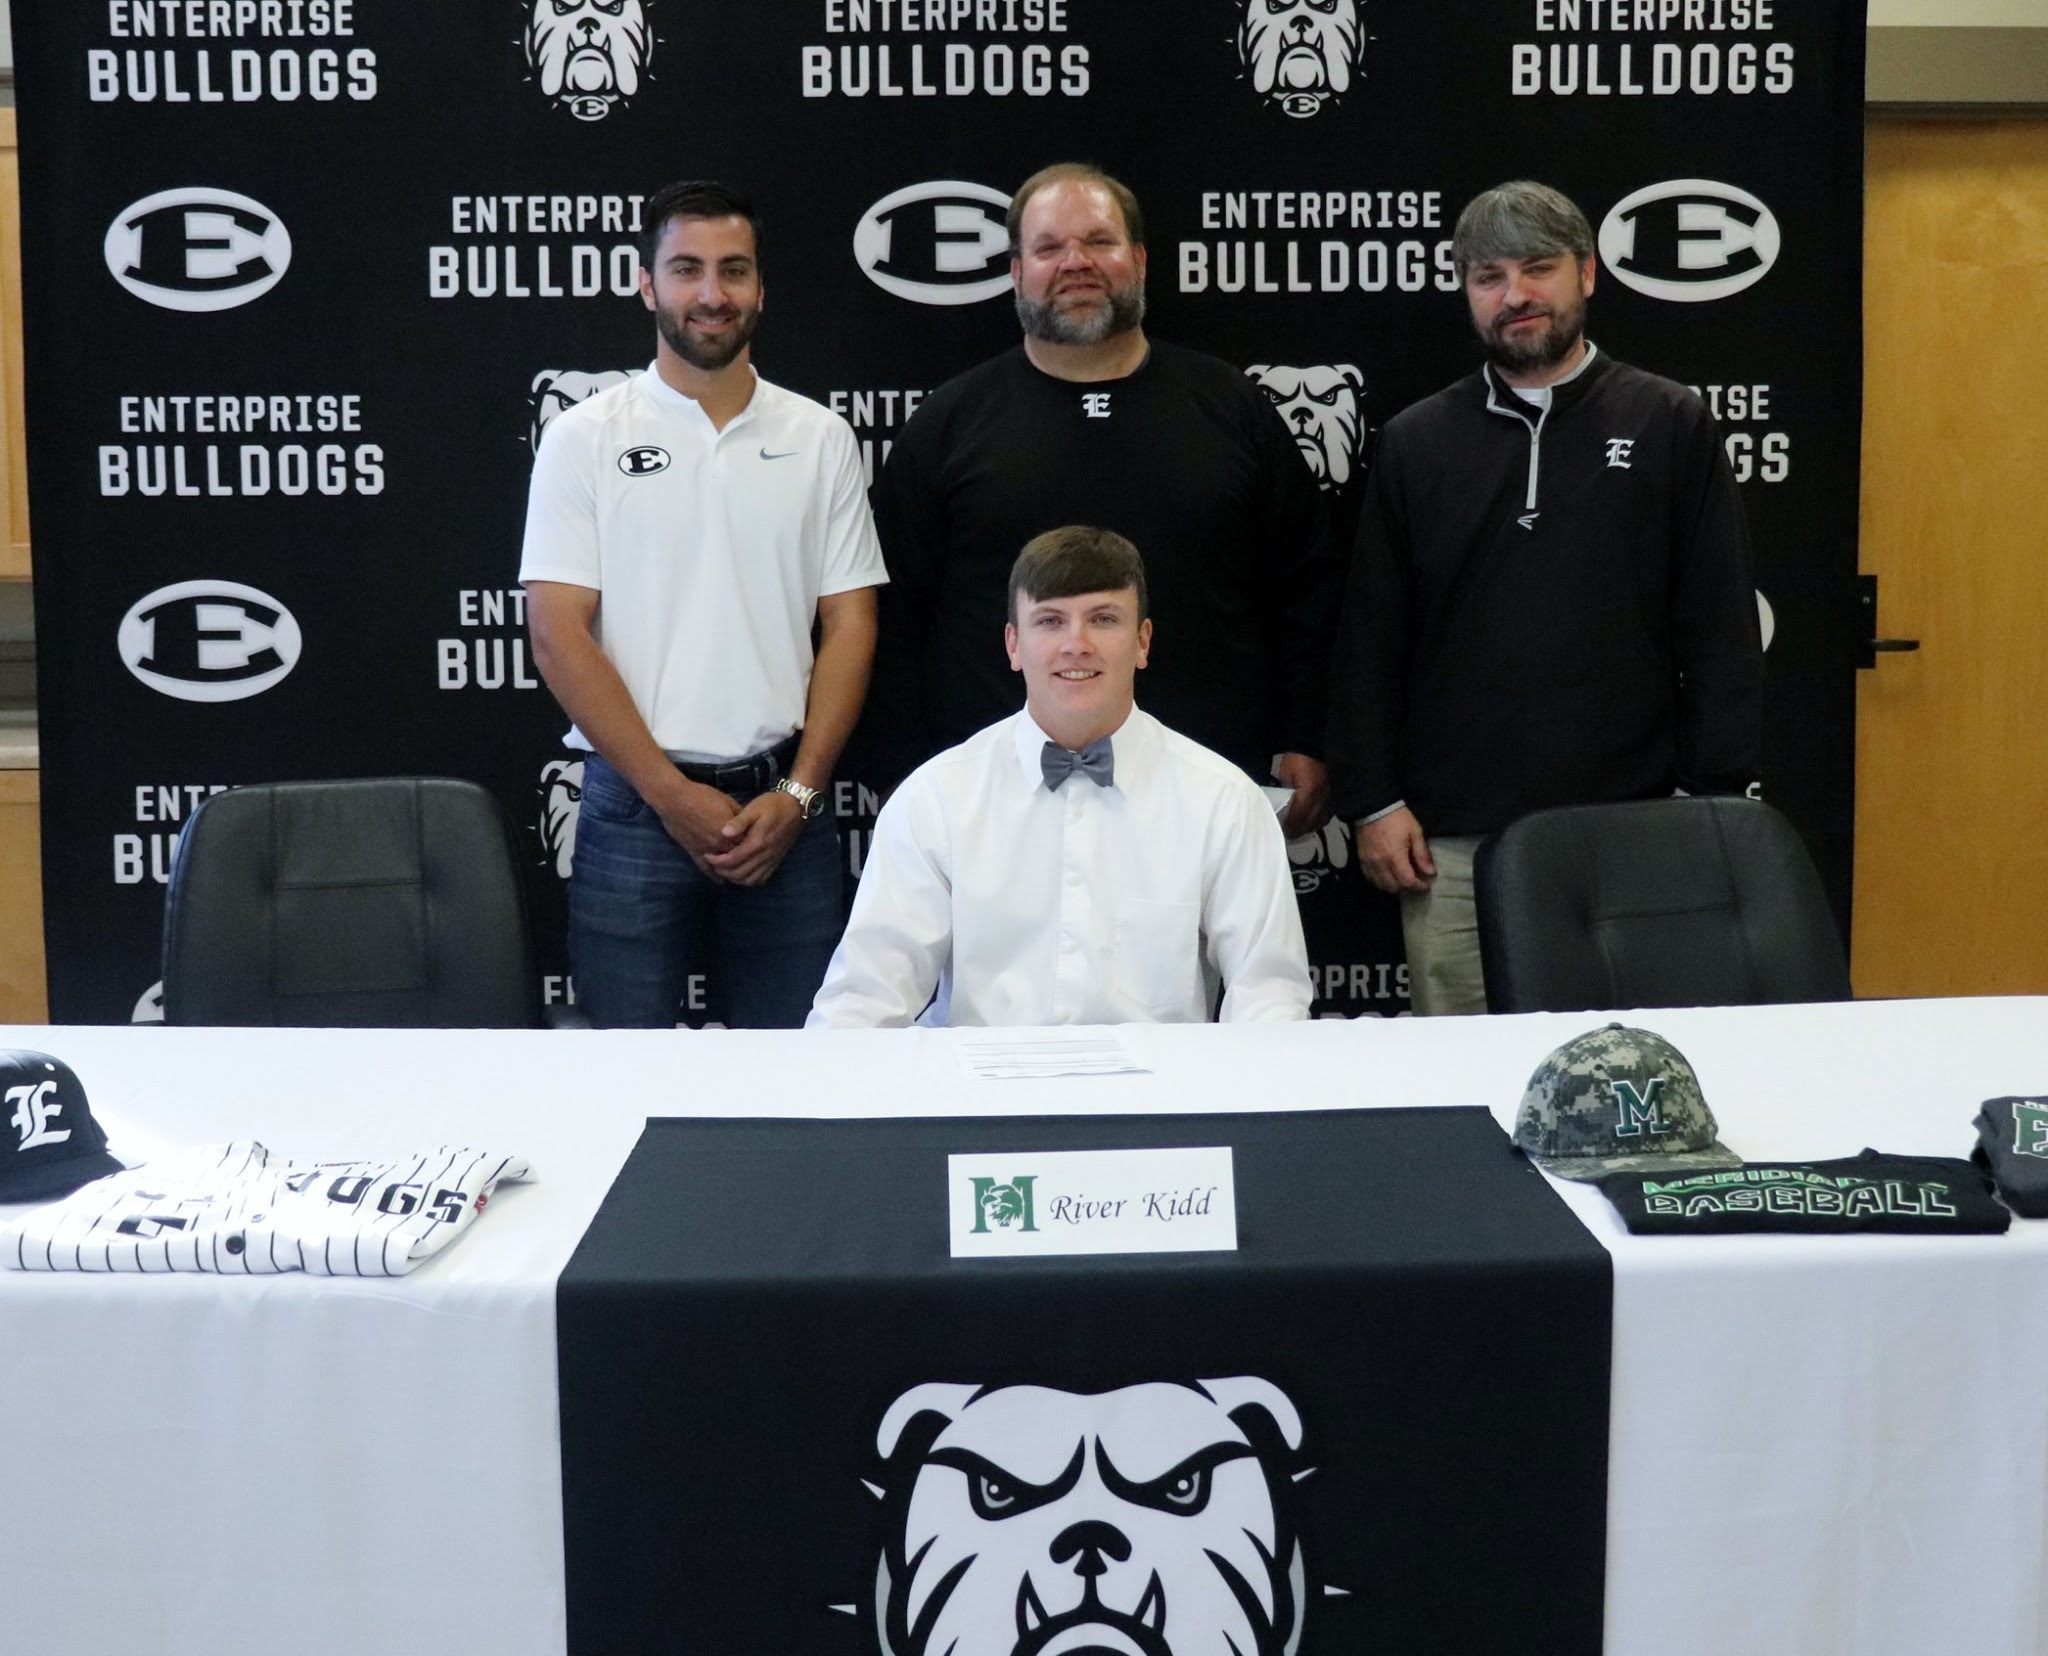 Bulldog Shortstop/Pitcher Signs with Eagles